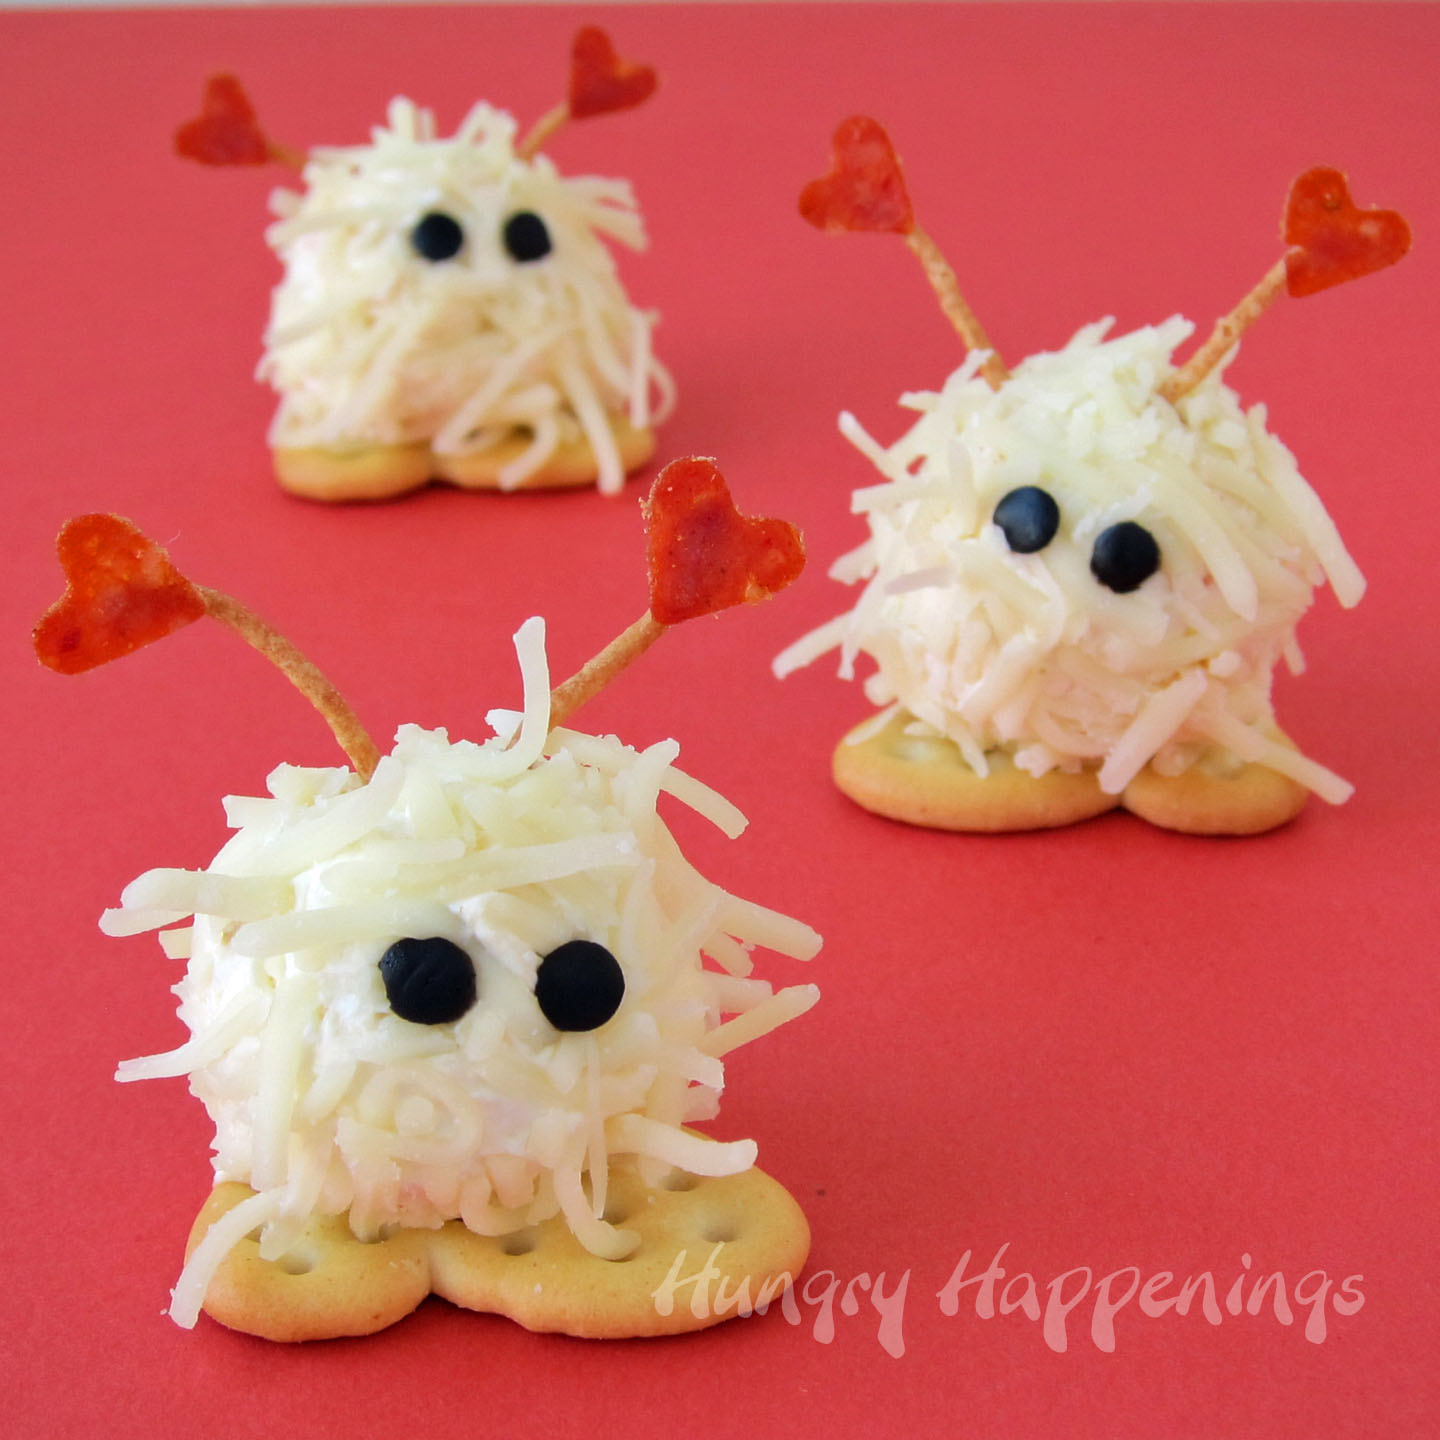 These Mini Cheese Ball Warm Fuzzies Are So Adorable Youu0027re Not Going To Want